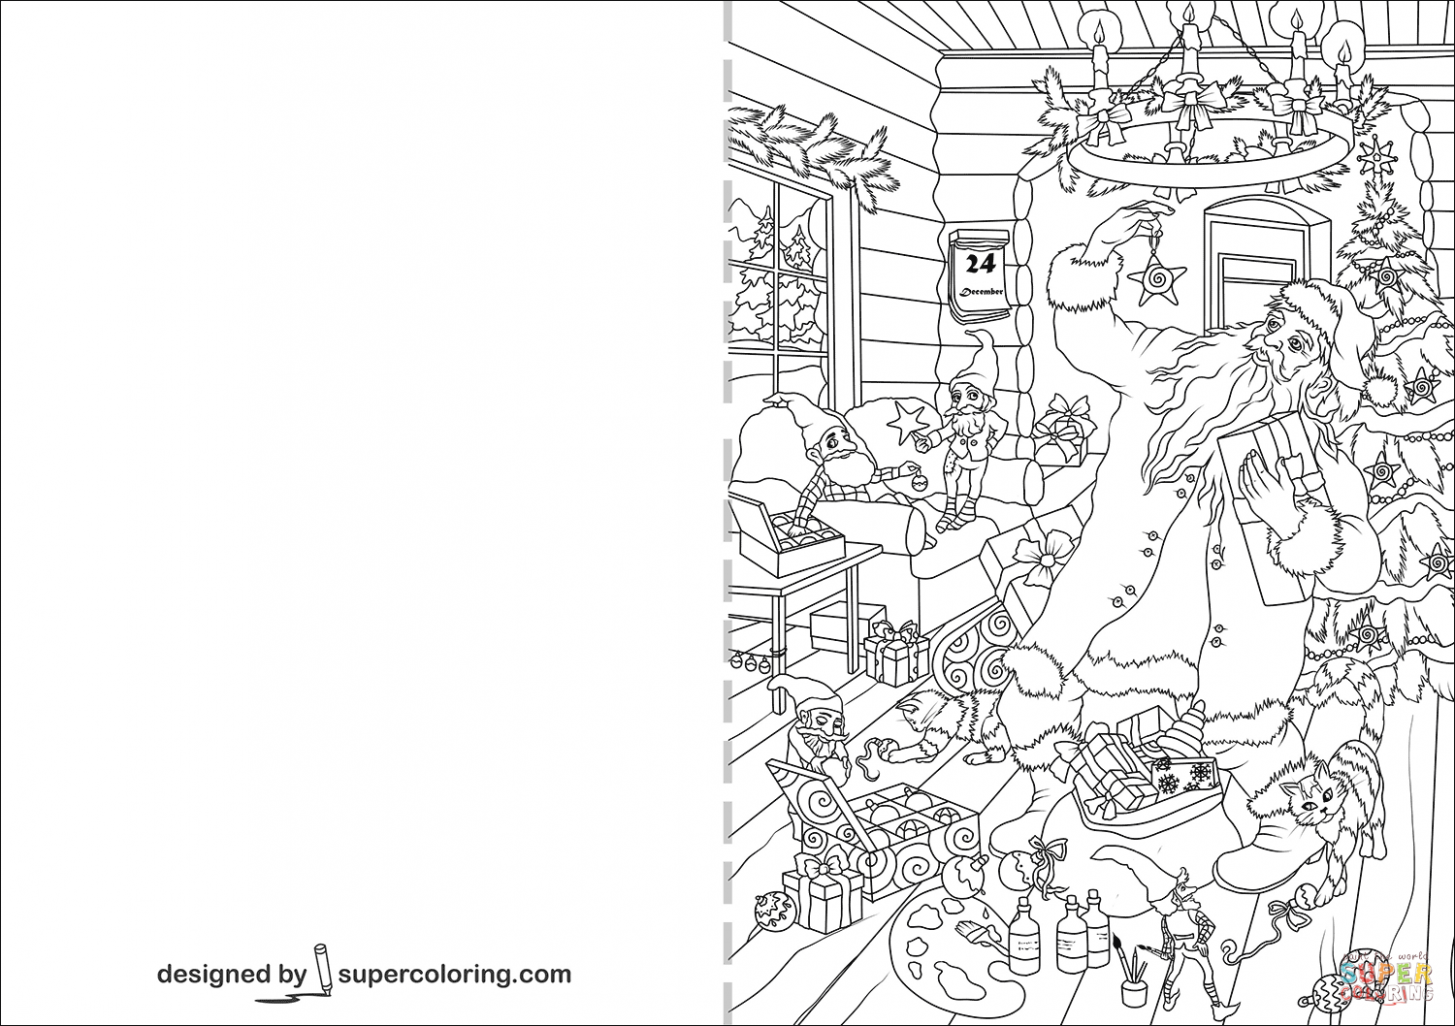 Christmas Card with Santa Claus and Presents coloring page | Free ..